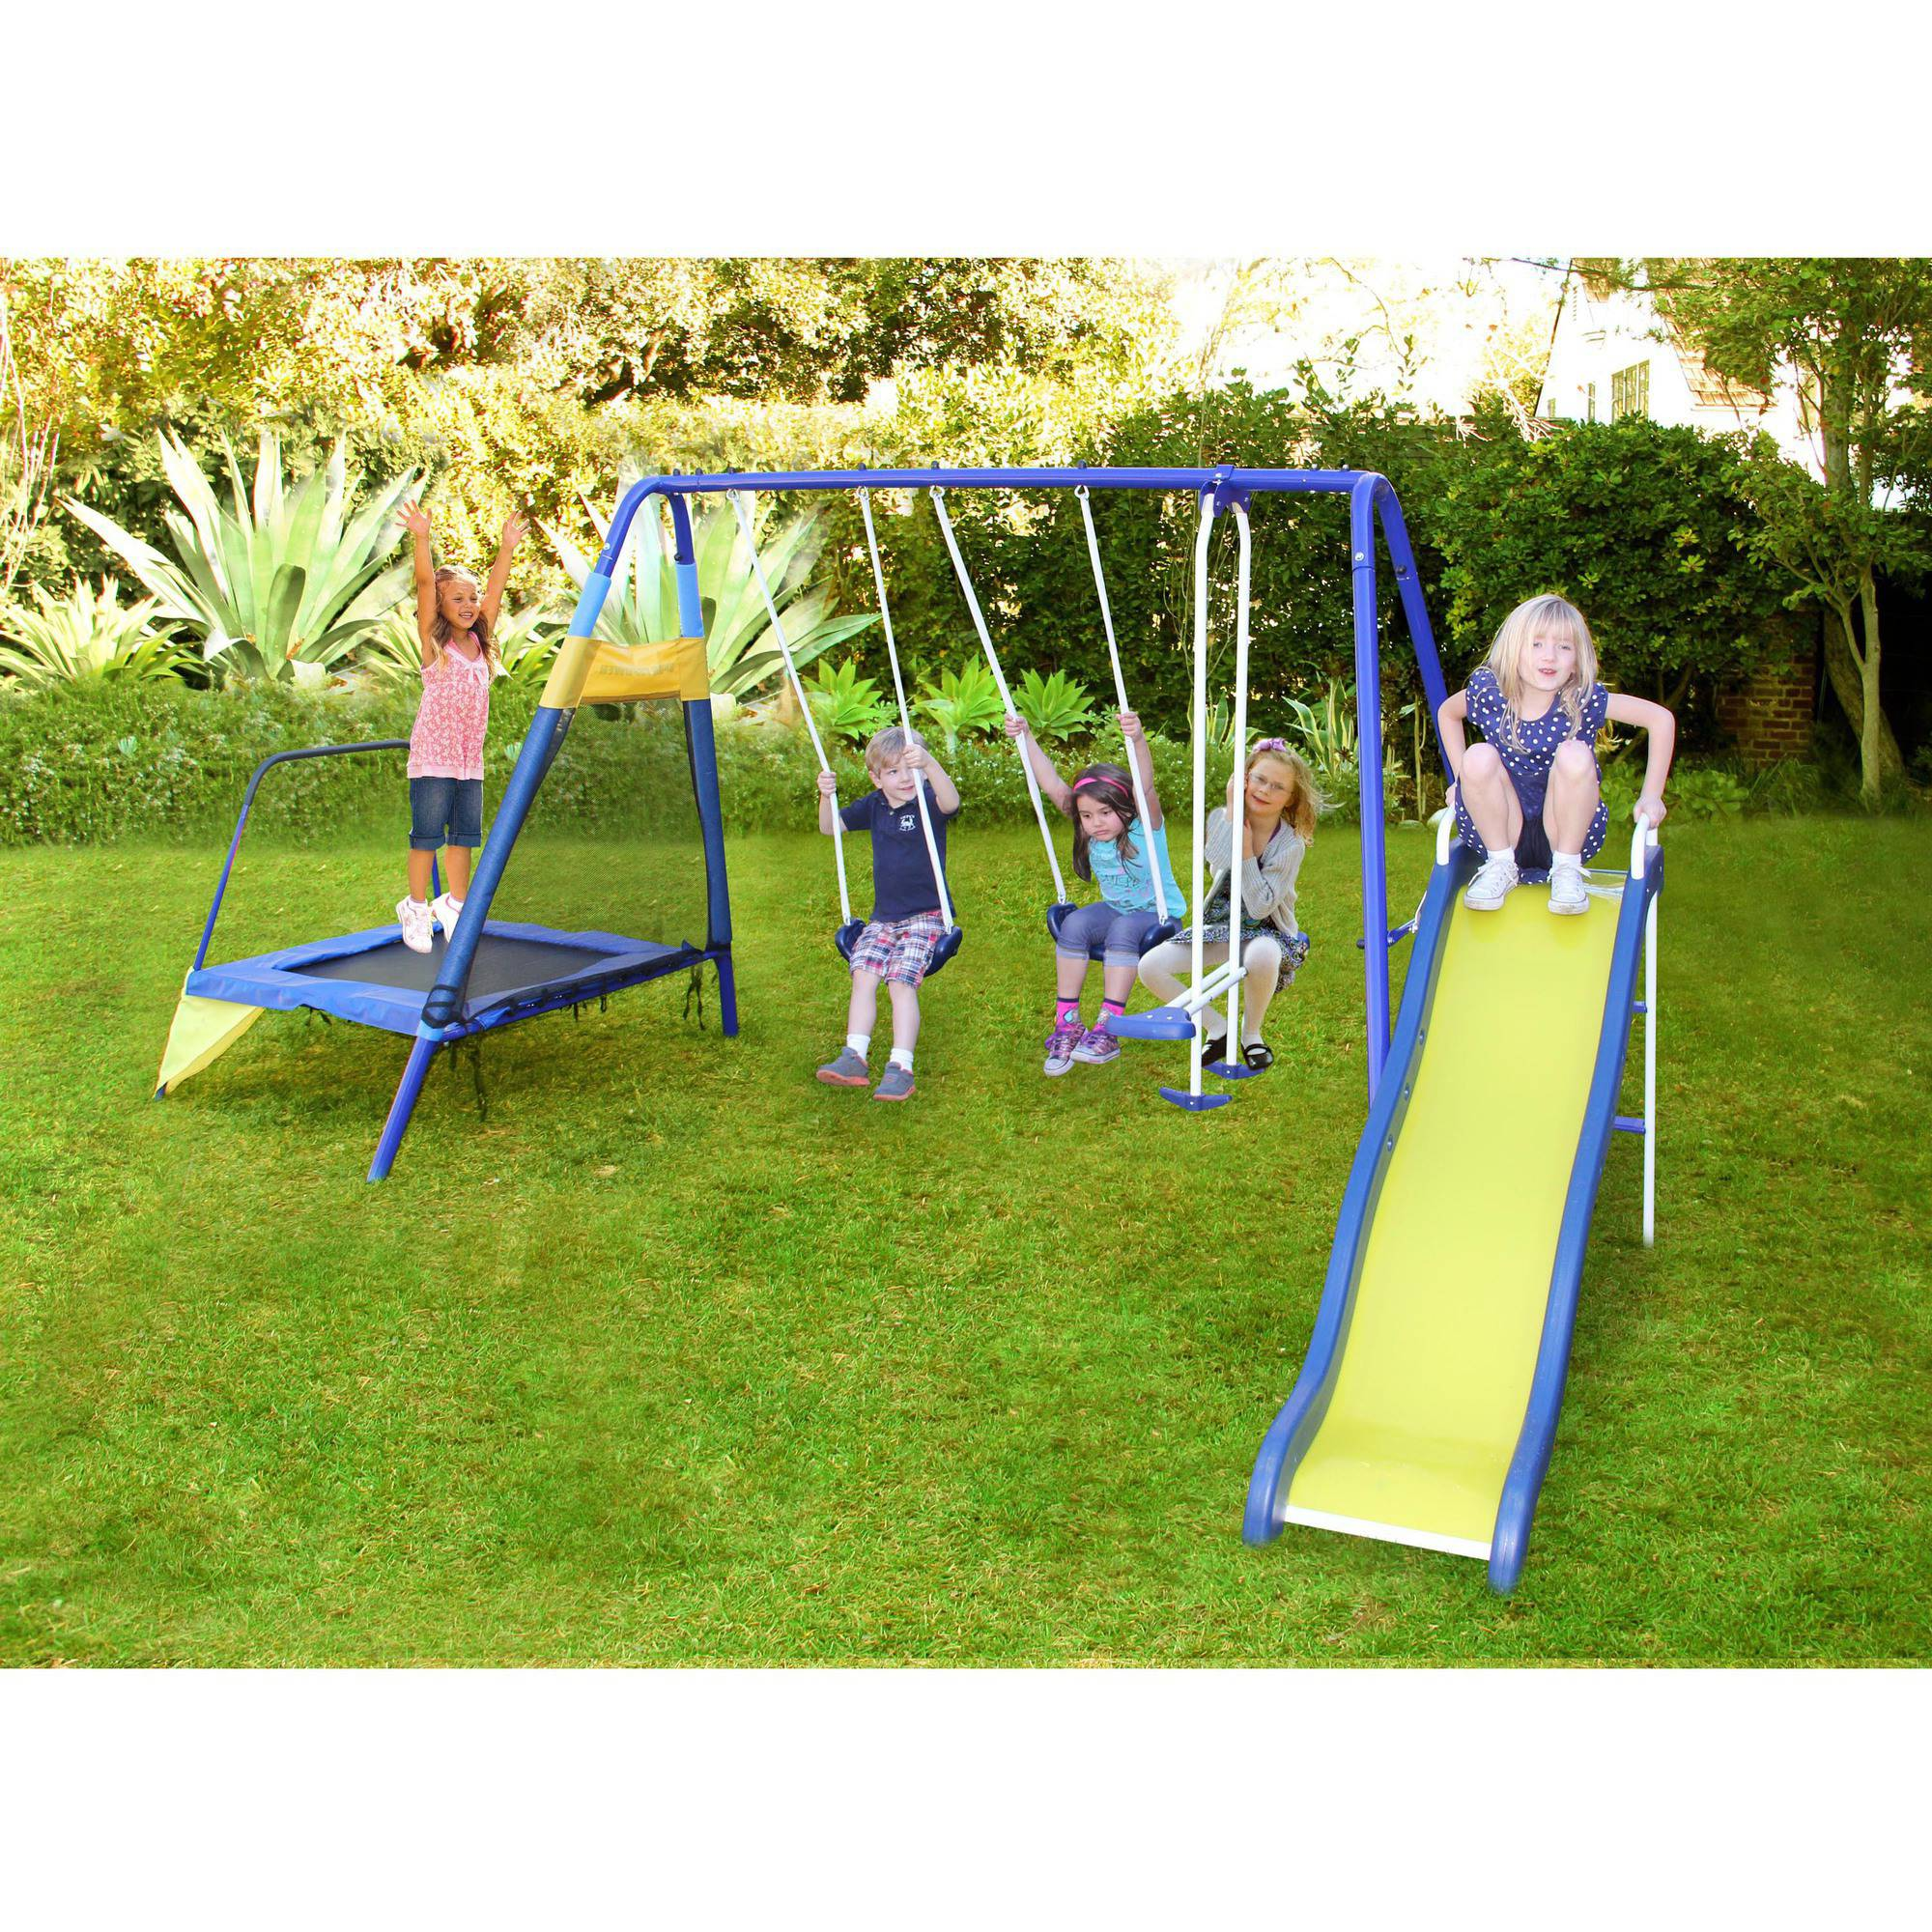 back products backyard tower swing sets set kids power with metal discovery playsets